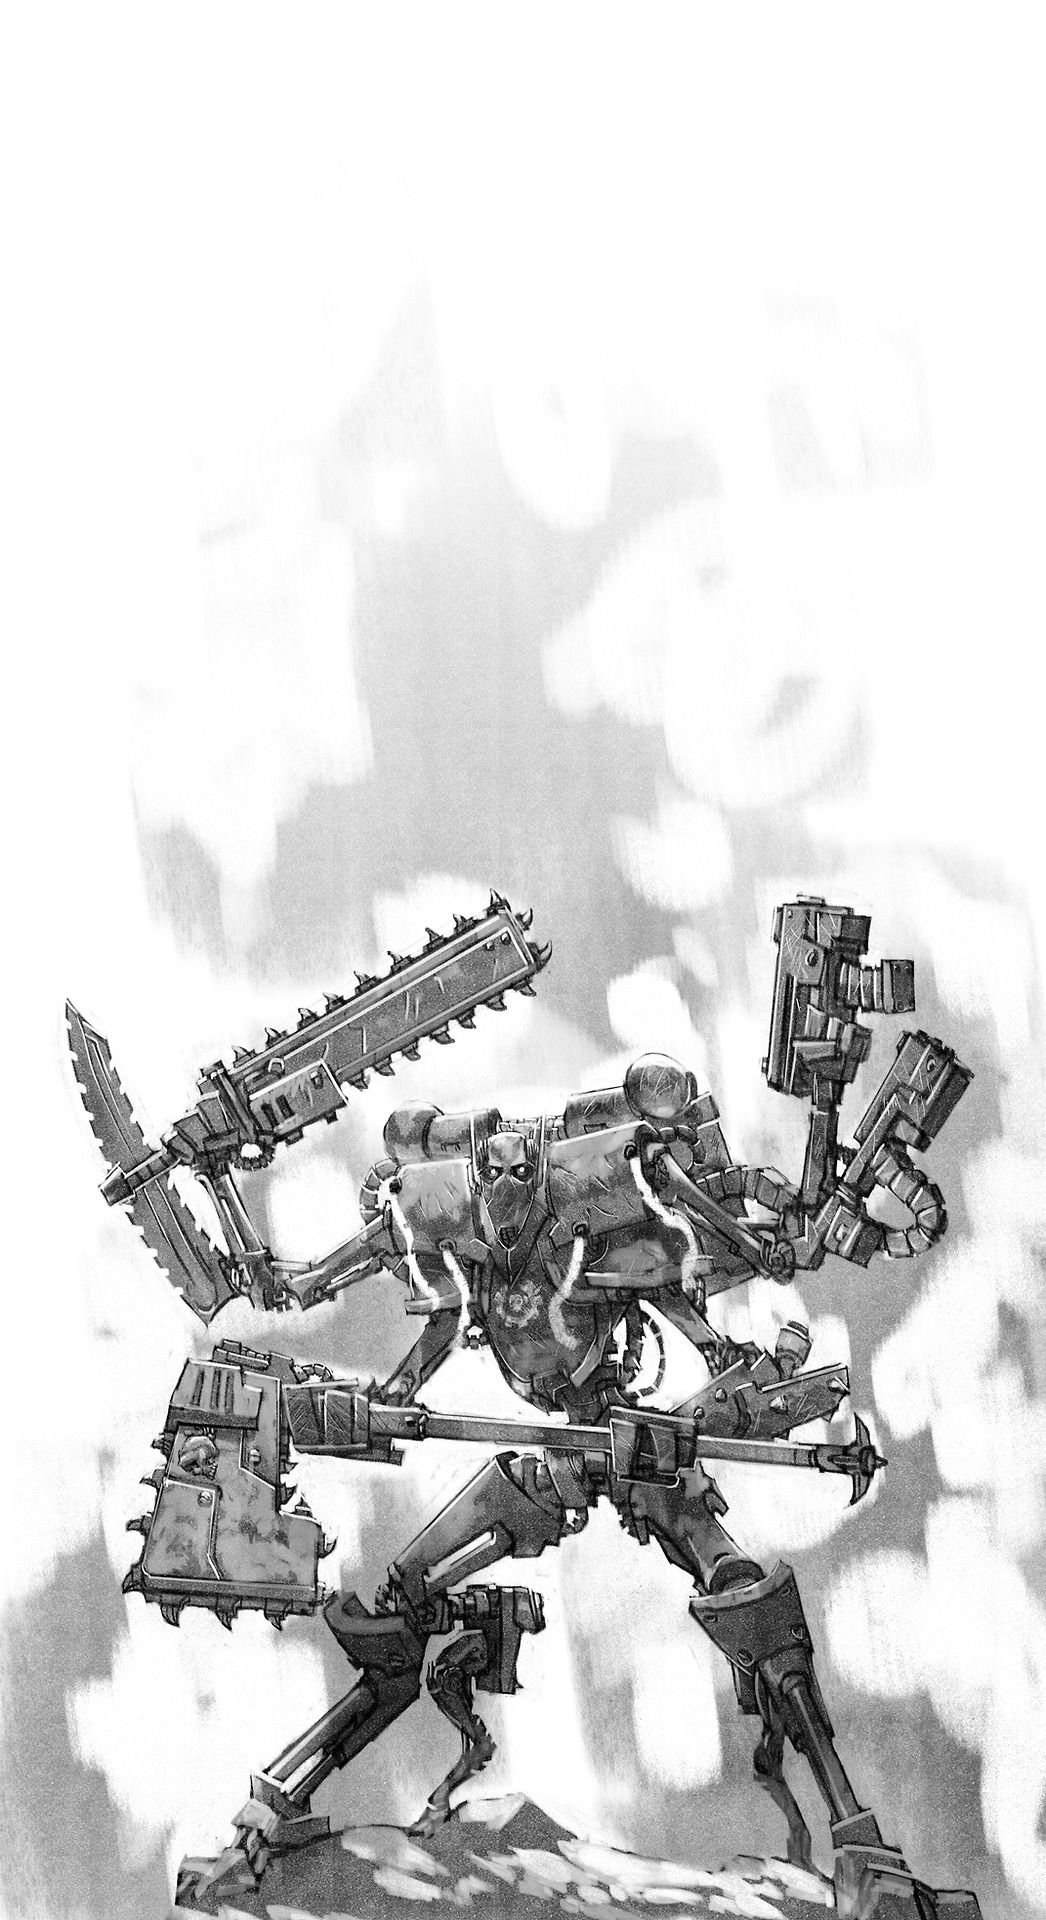 Regourso Commission 40k Version Of General Grievous Yes Mor Star War And WH40k Crossovers Please